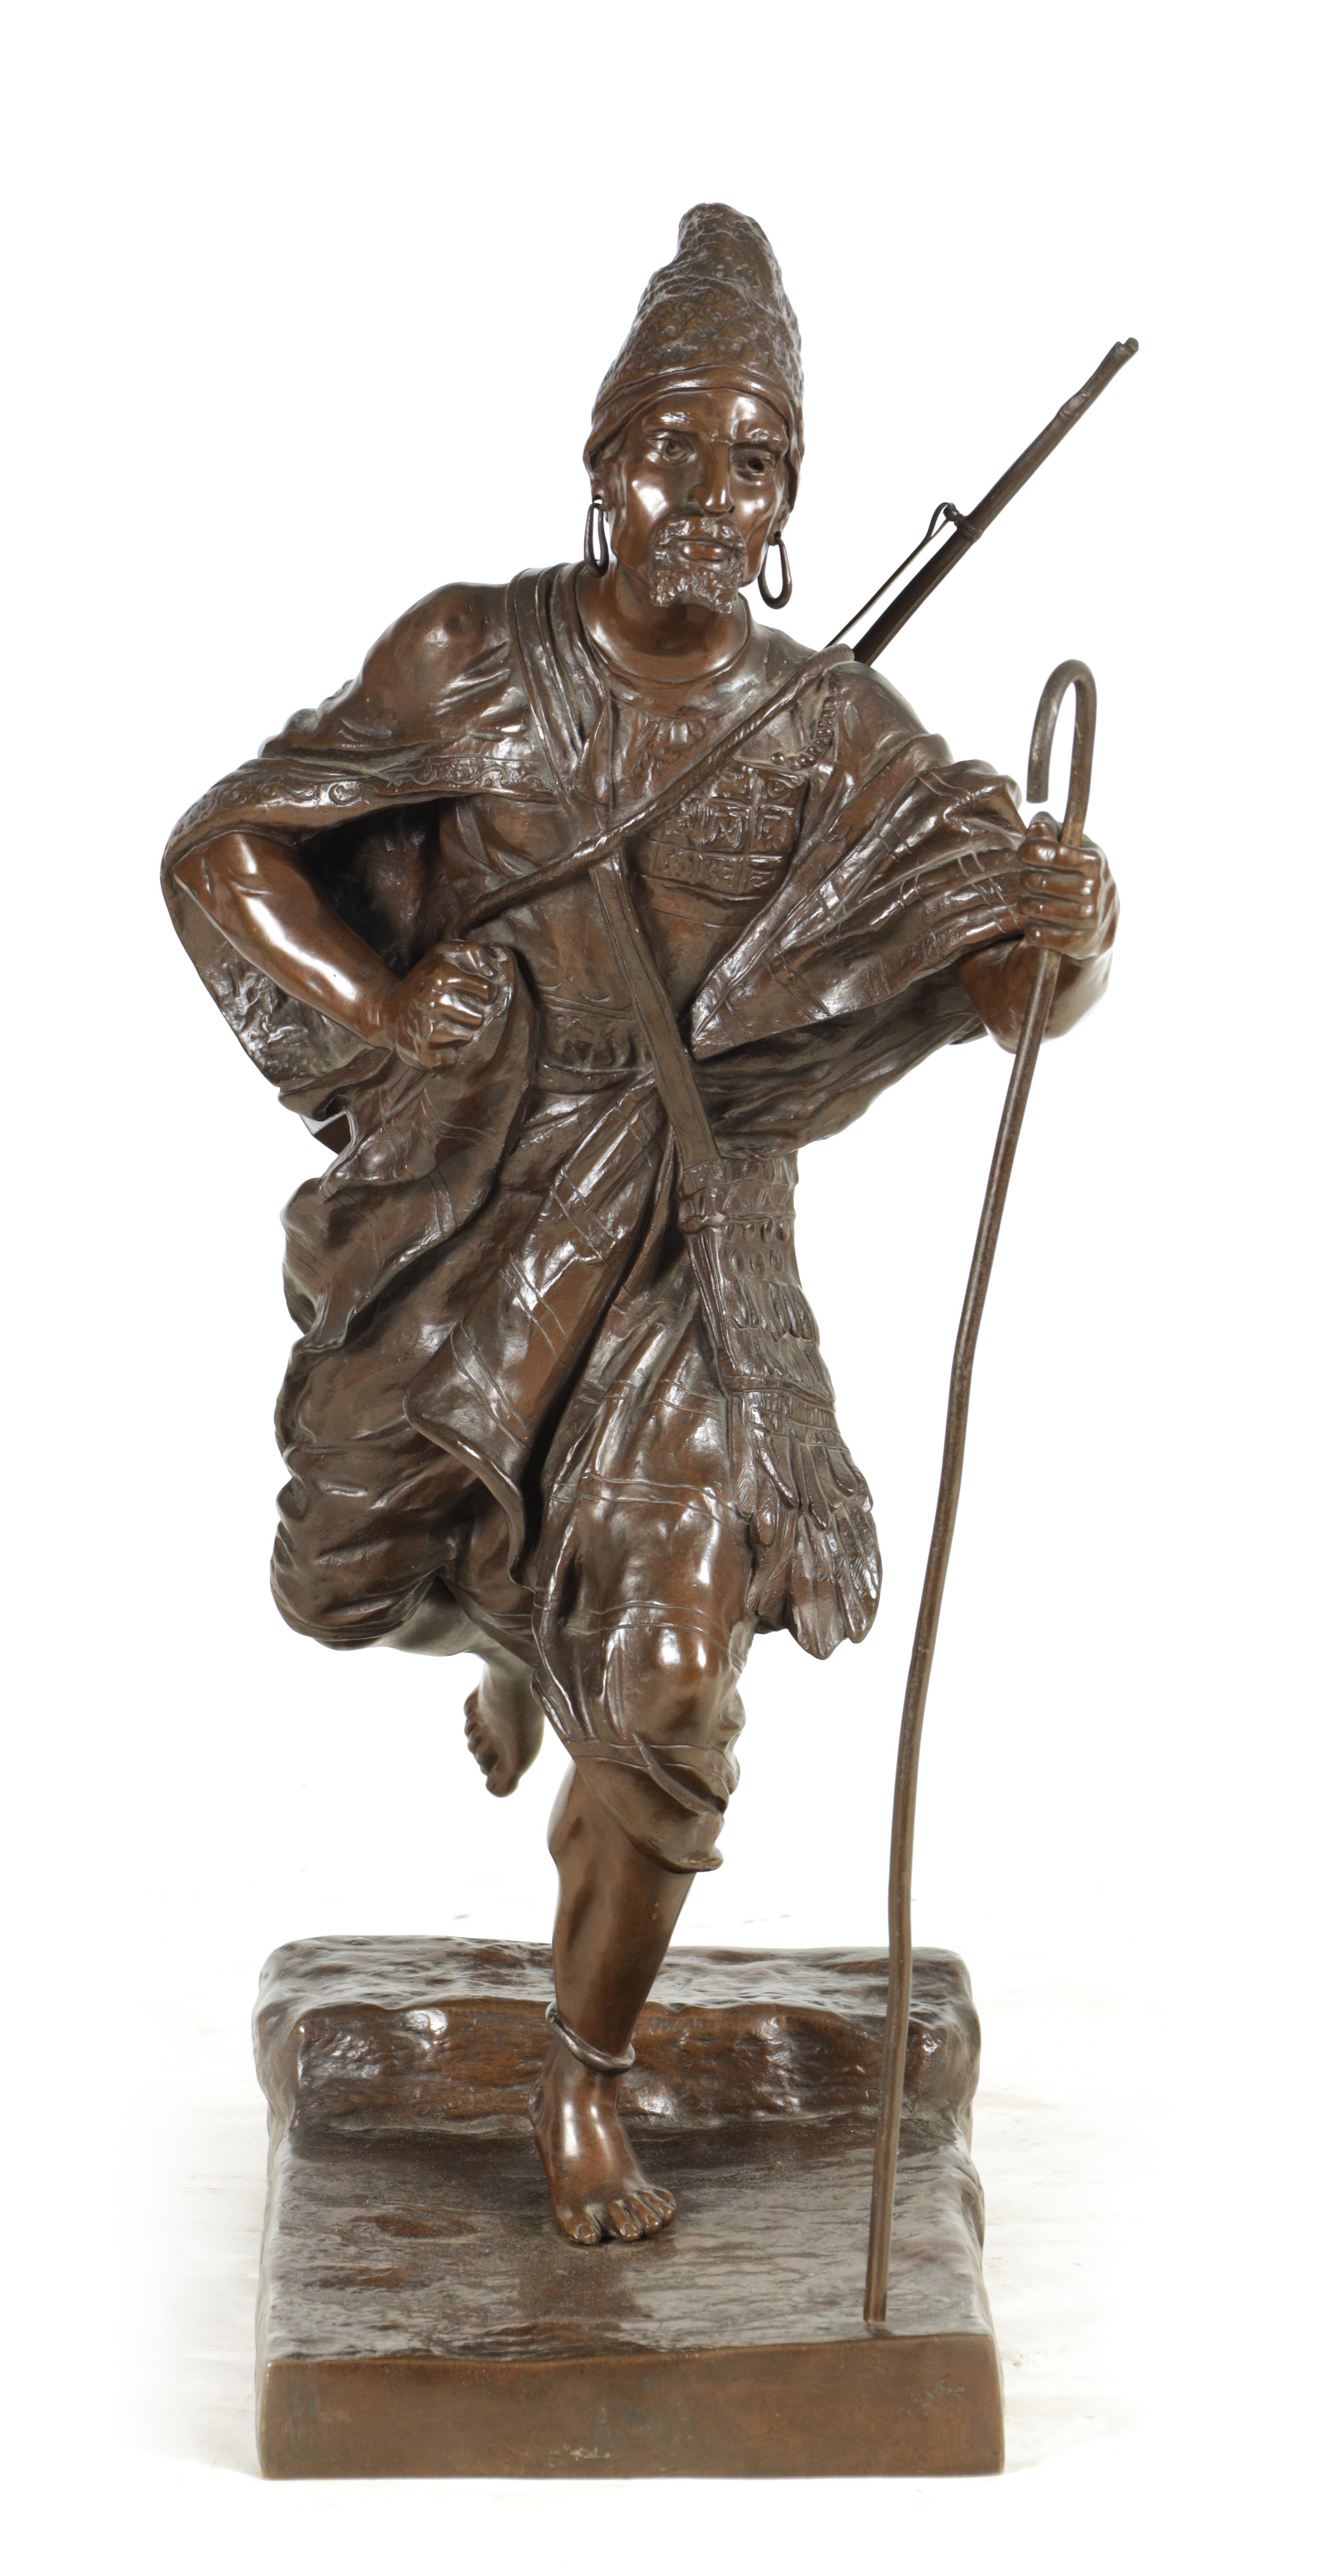 A 19TH CENTURY FRENCH FIGURAL BRONZE depicting an Eastern male figure walking with shepherds crook